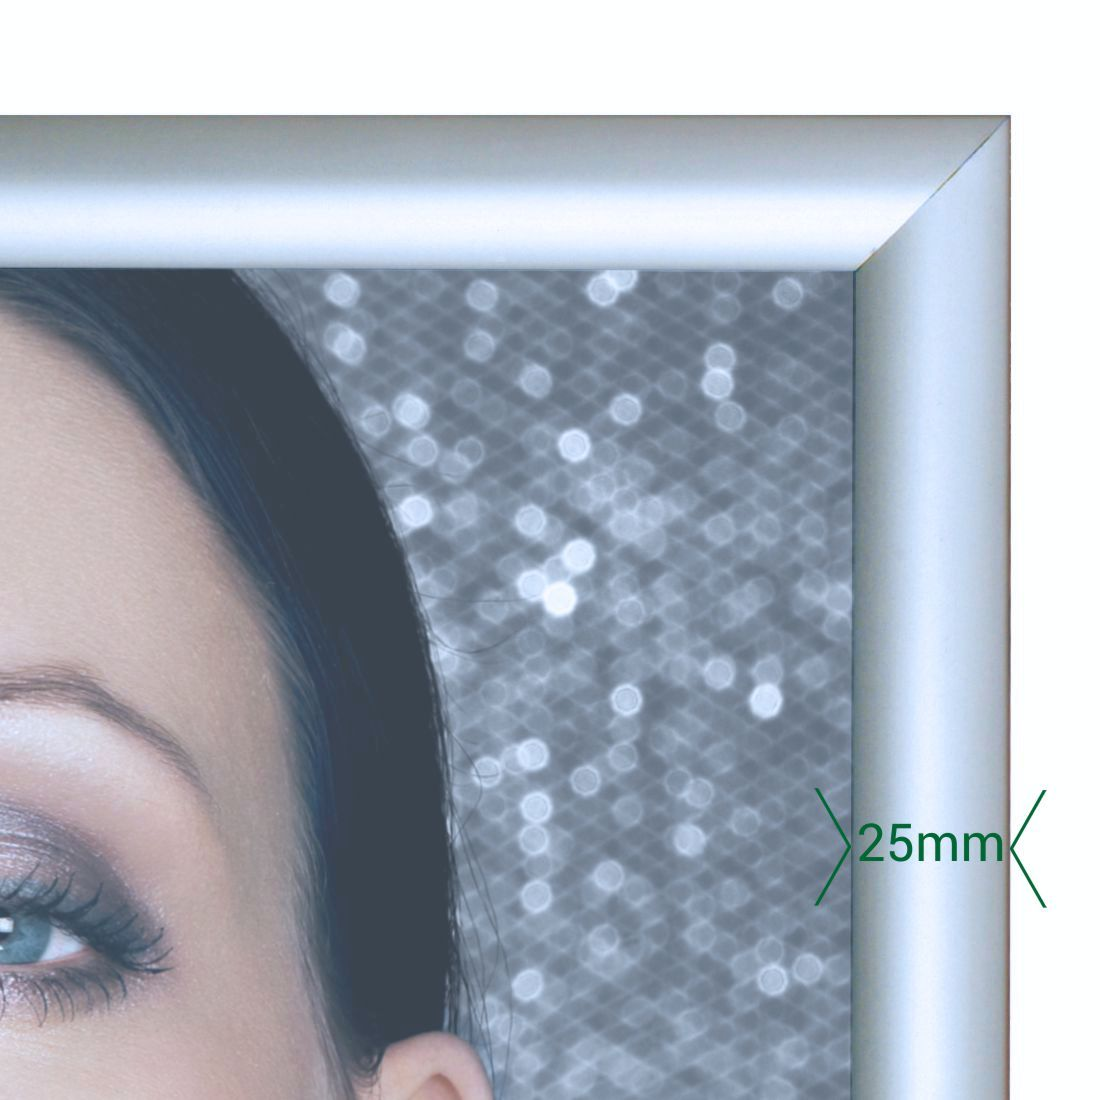 c70420cbd58 Snap frames poster holders - silver 25mm